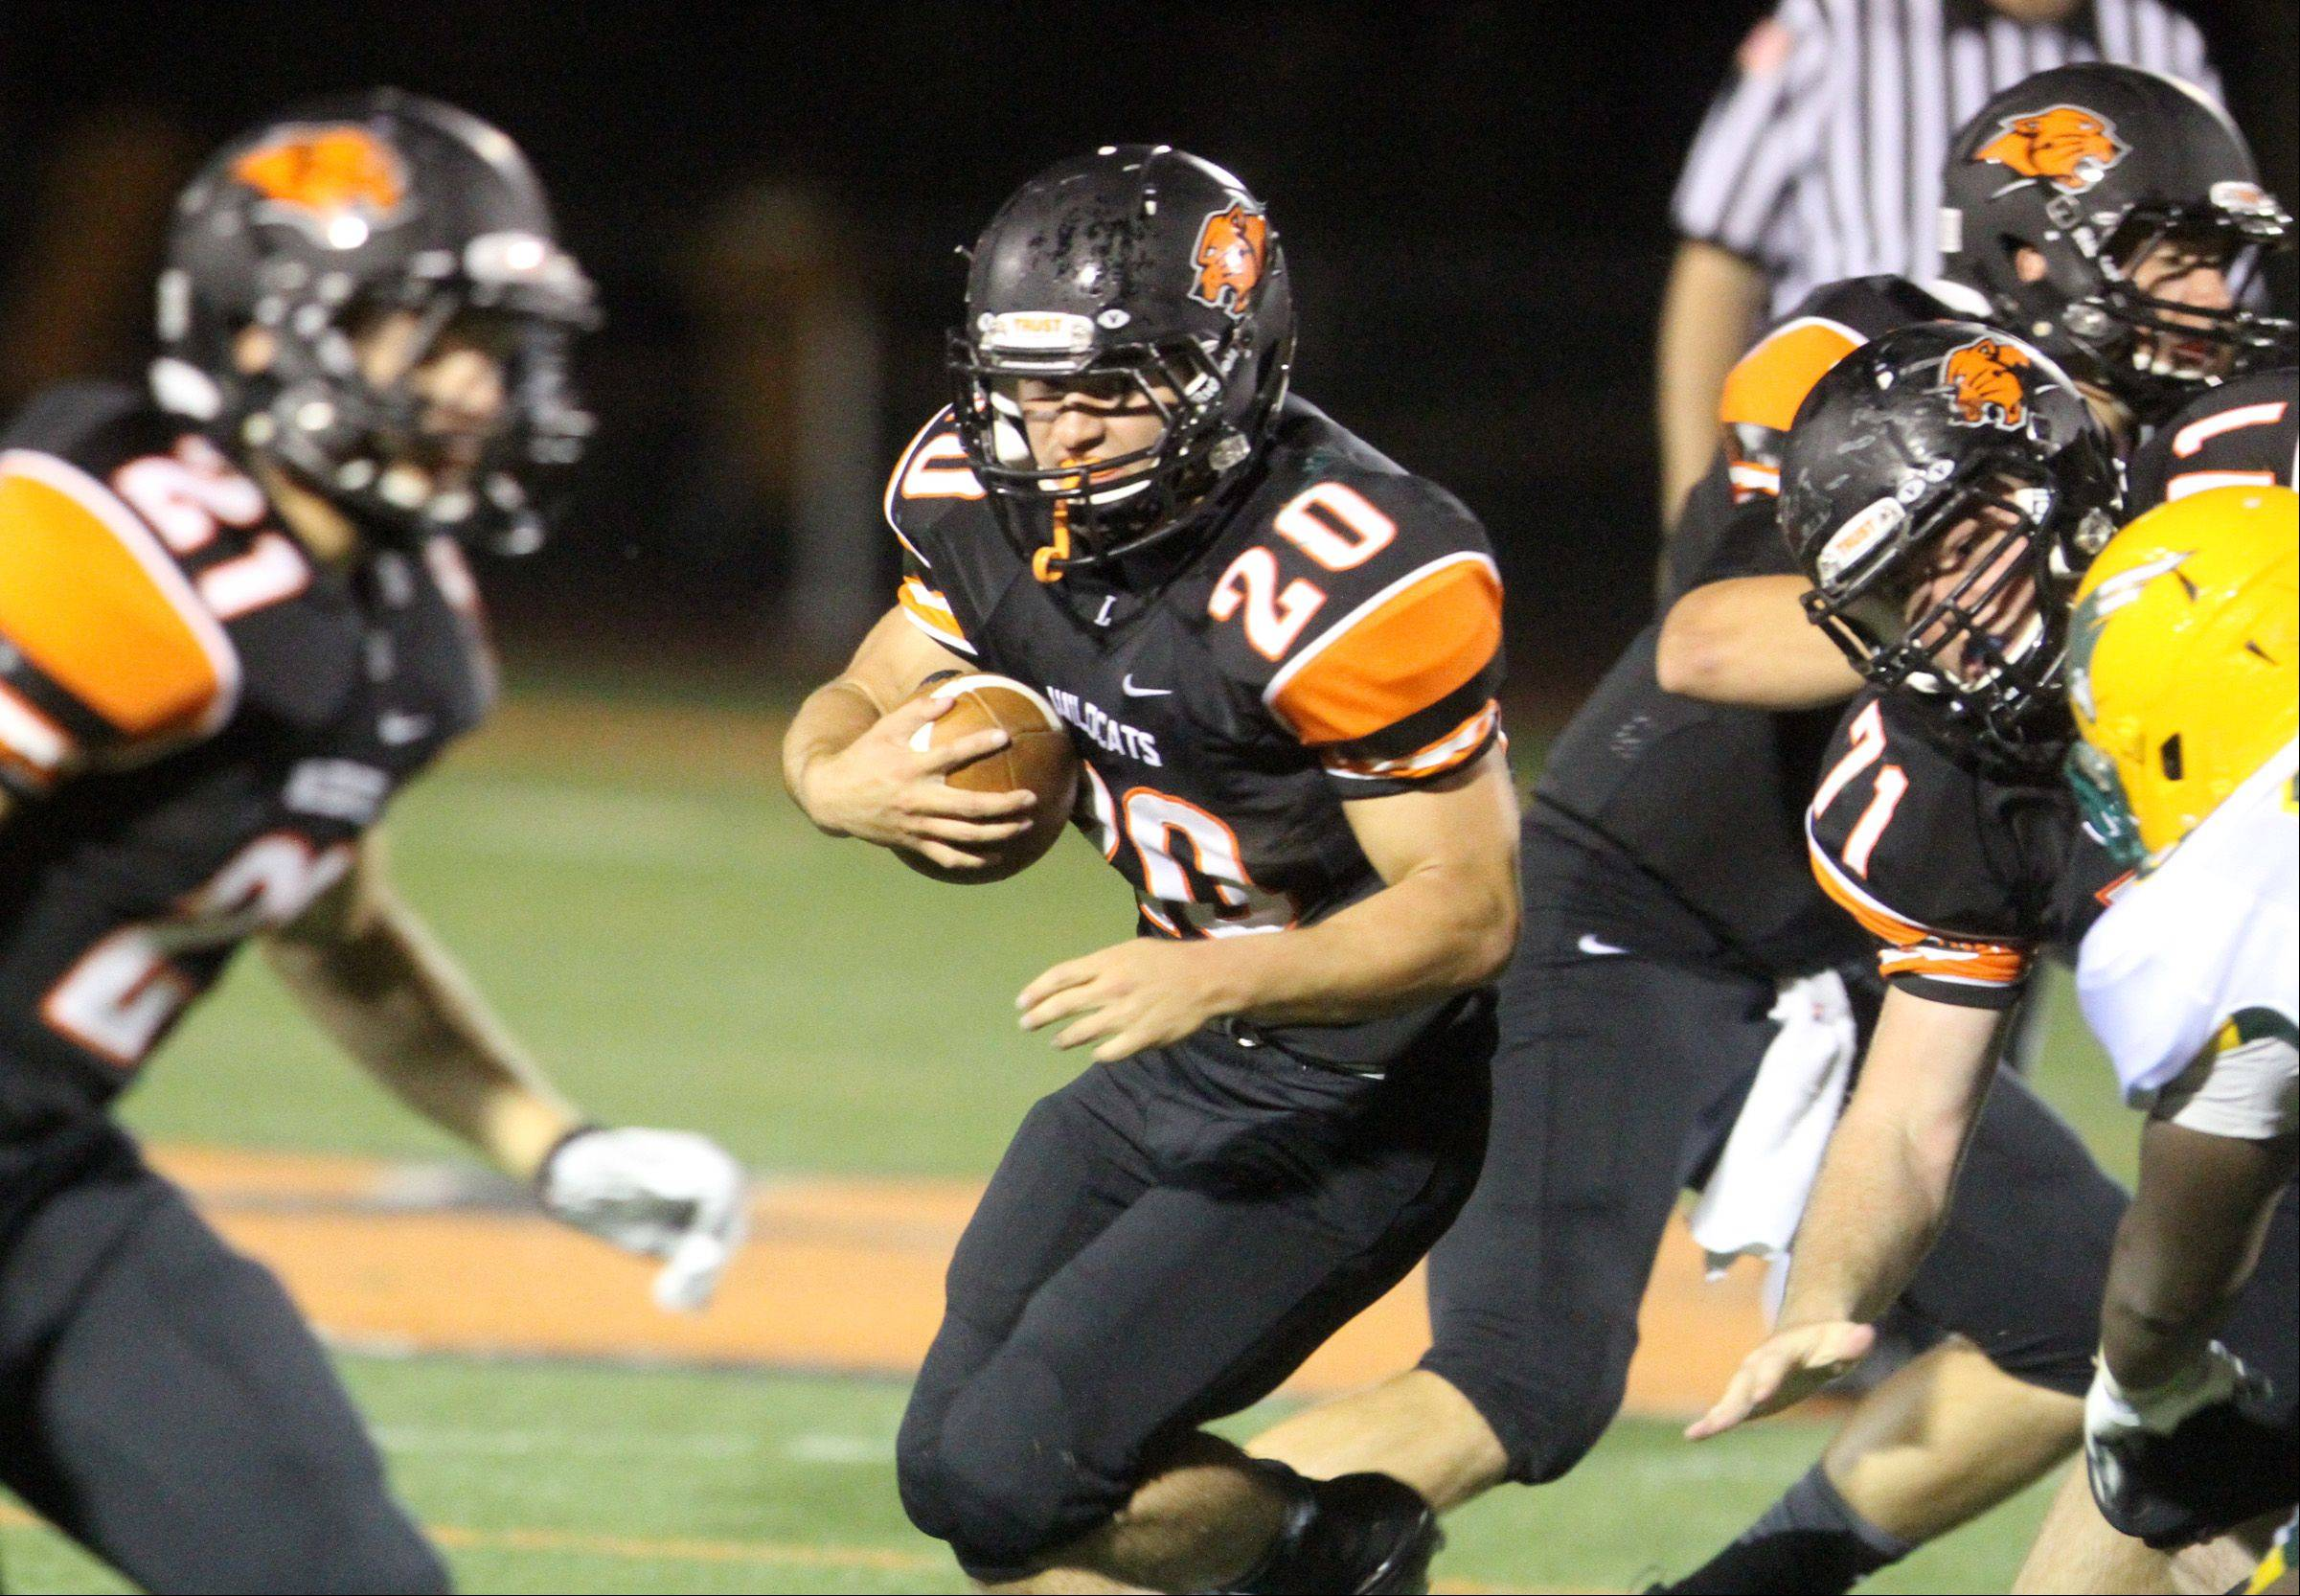 Libertyville running back Brian Swift looks for an opening.